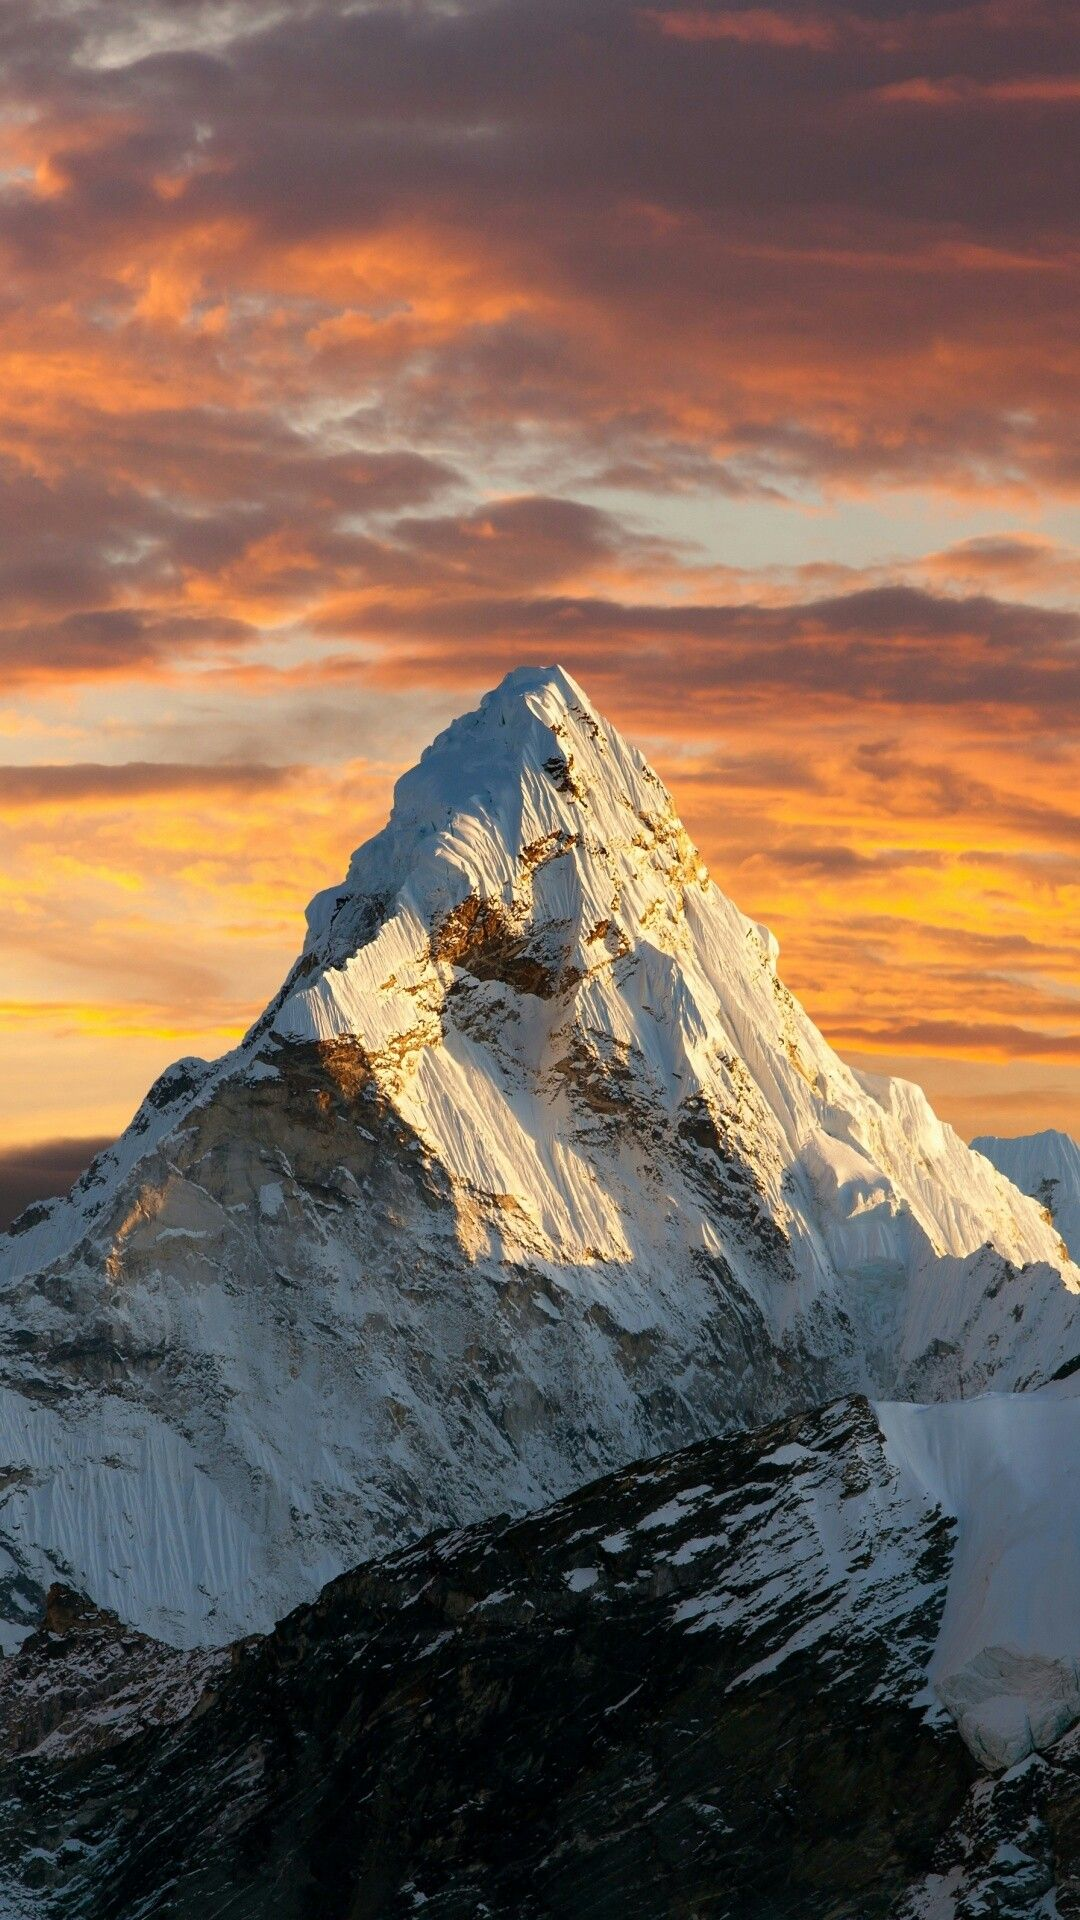 Pin By Walter Medina On Nature Photography Landscape Wallpaper Mountain Paintings Nature Wallpaper